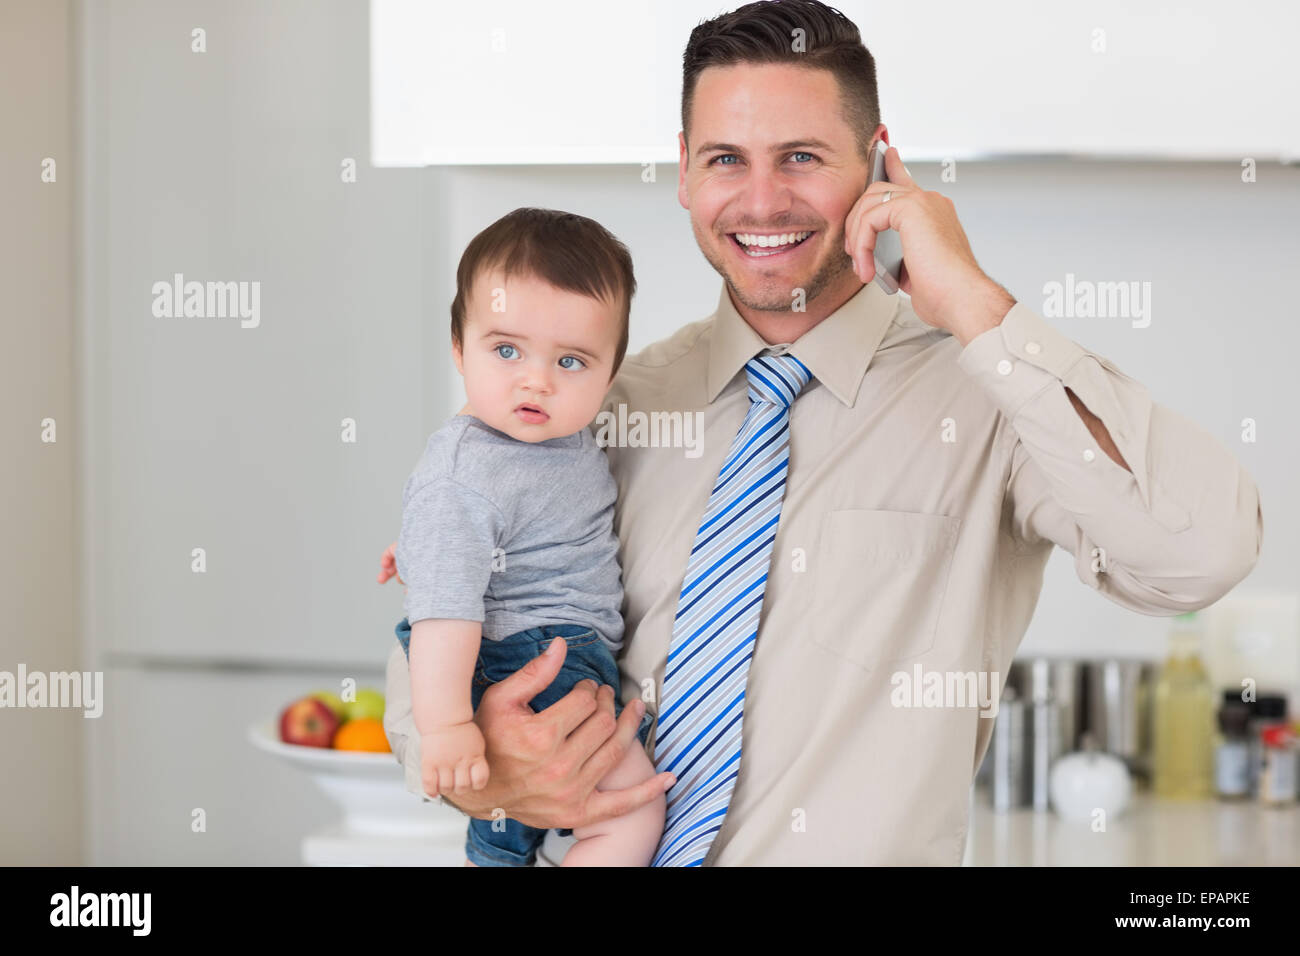 Businessman carrying baby while while using cellphone - Stock Image